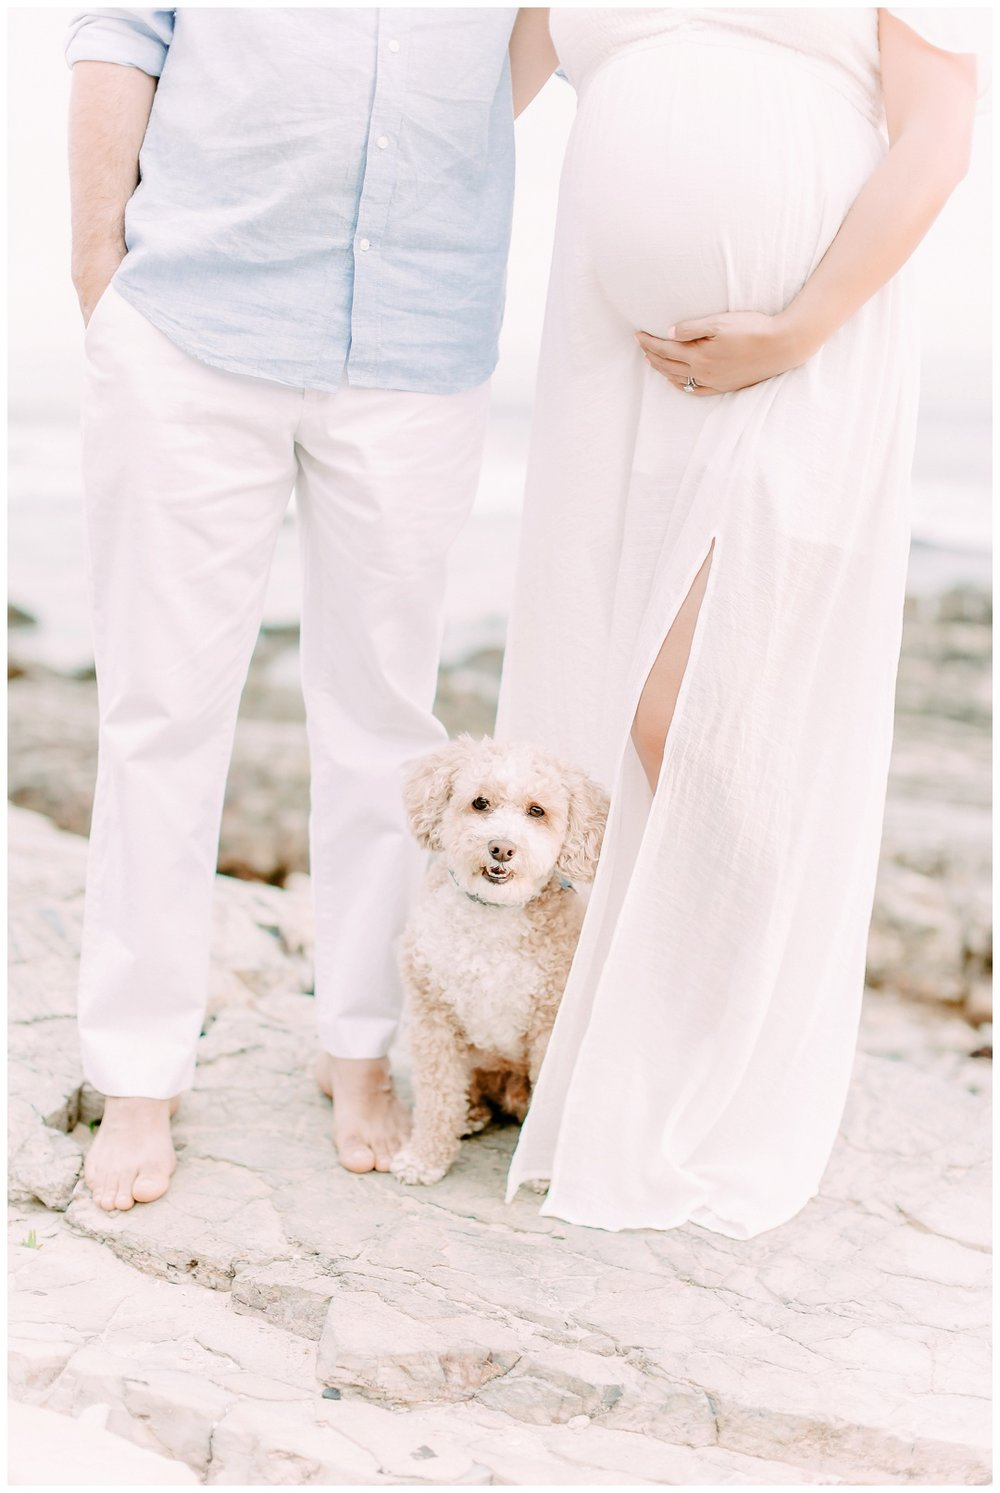 Newport_Beach_Maternity_Photographer_Orange_County_Maternity_Photography_Cori_Kleckner_Photography_Orange_County_Family_Photographer_Beach_Maternity_Session_1125.jpg